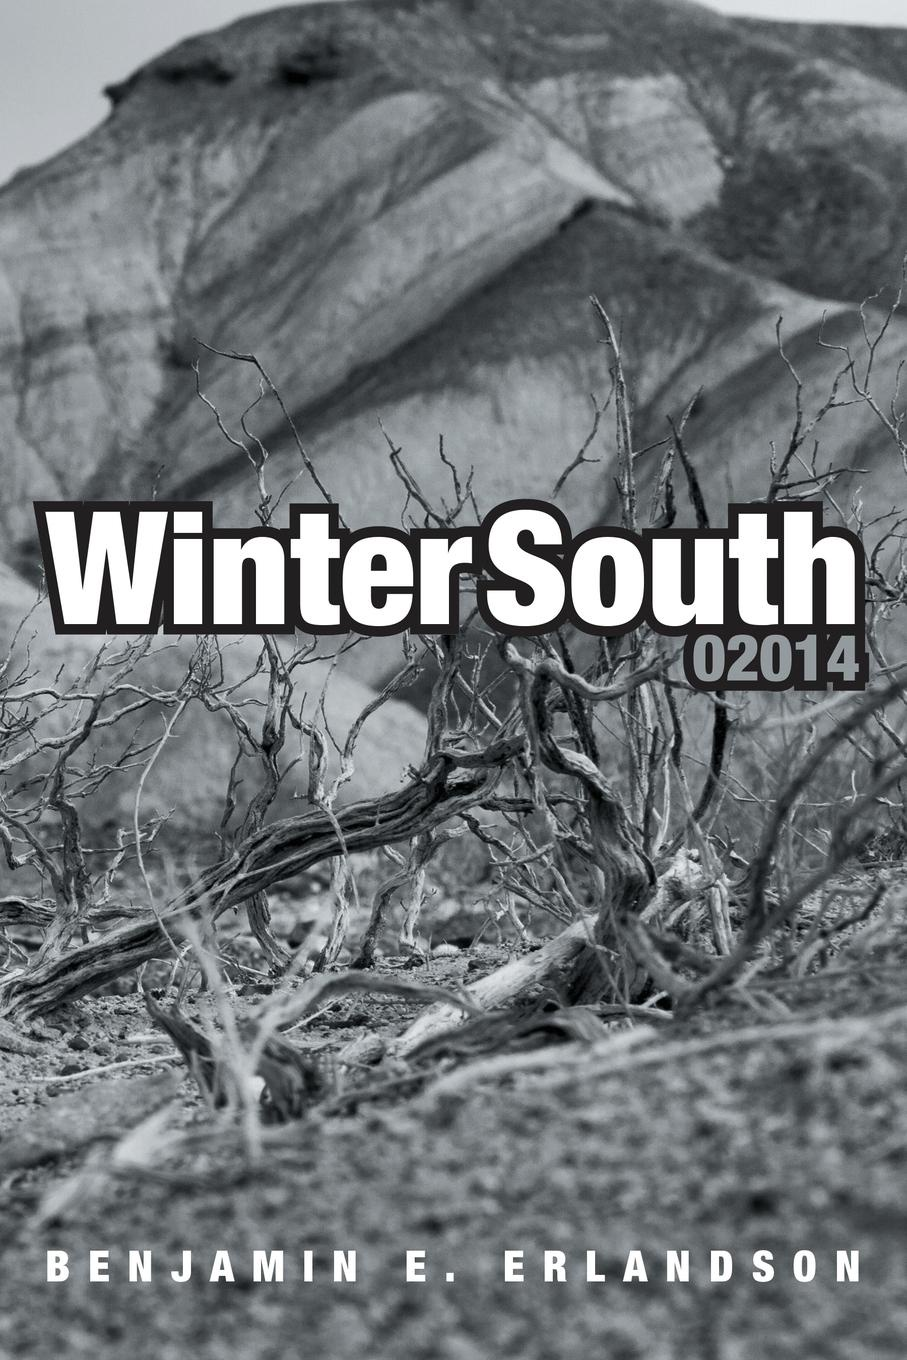 Benjamin E. Erlandson Winter South 02014 воблер tsuribito minnow ss цвет 057 42 мм